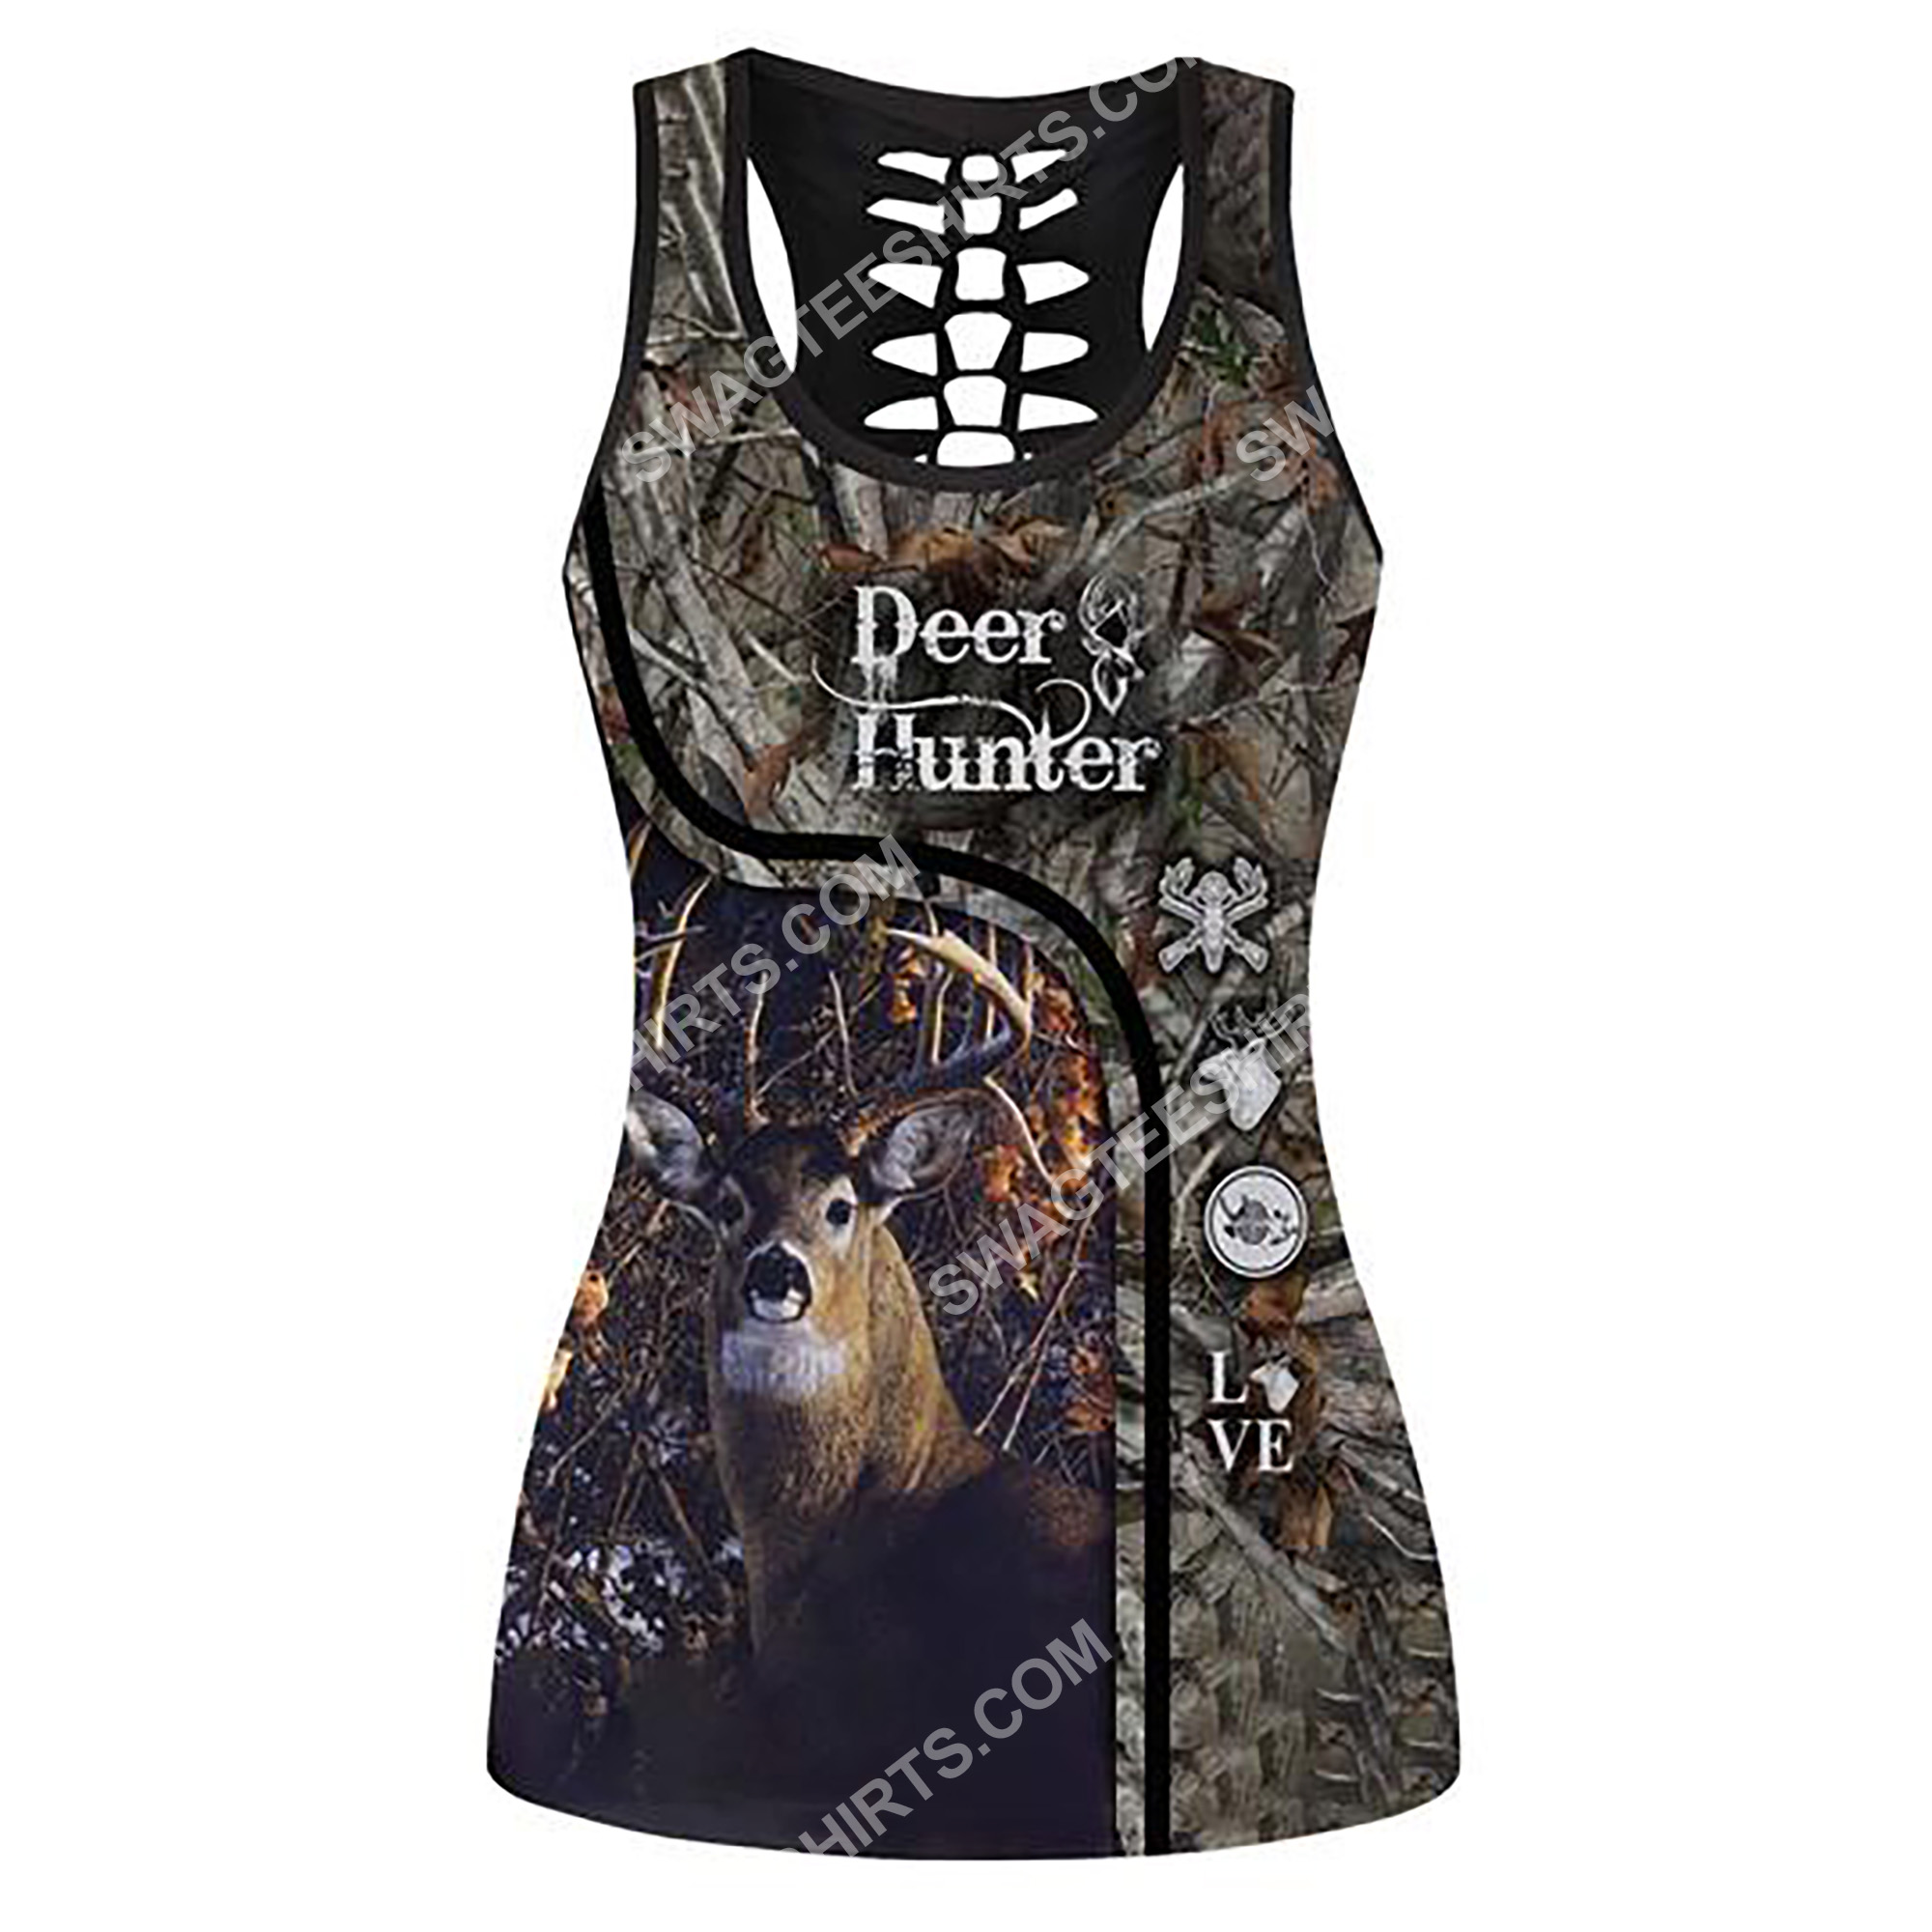 deer hunter in the forest full printing hollow tank top 2(2) - Copy